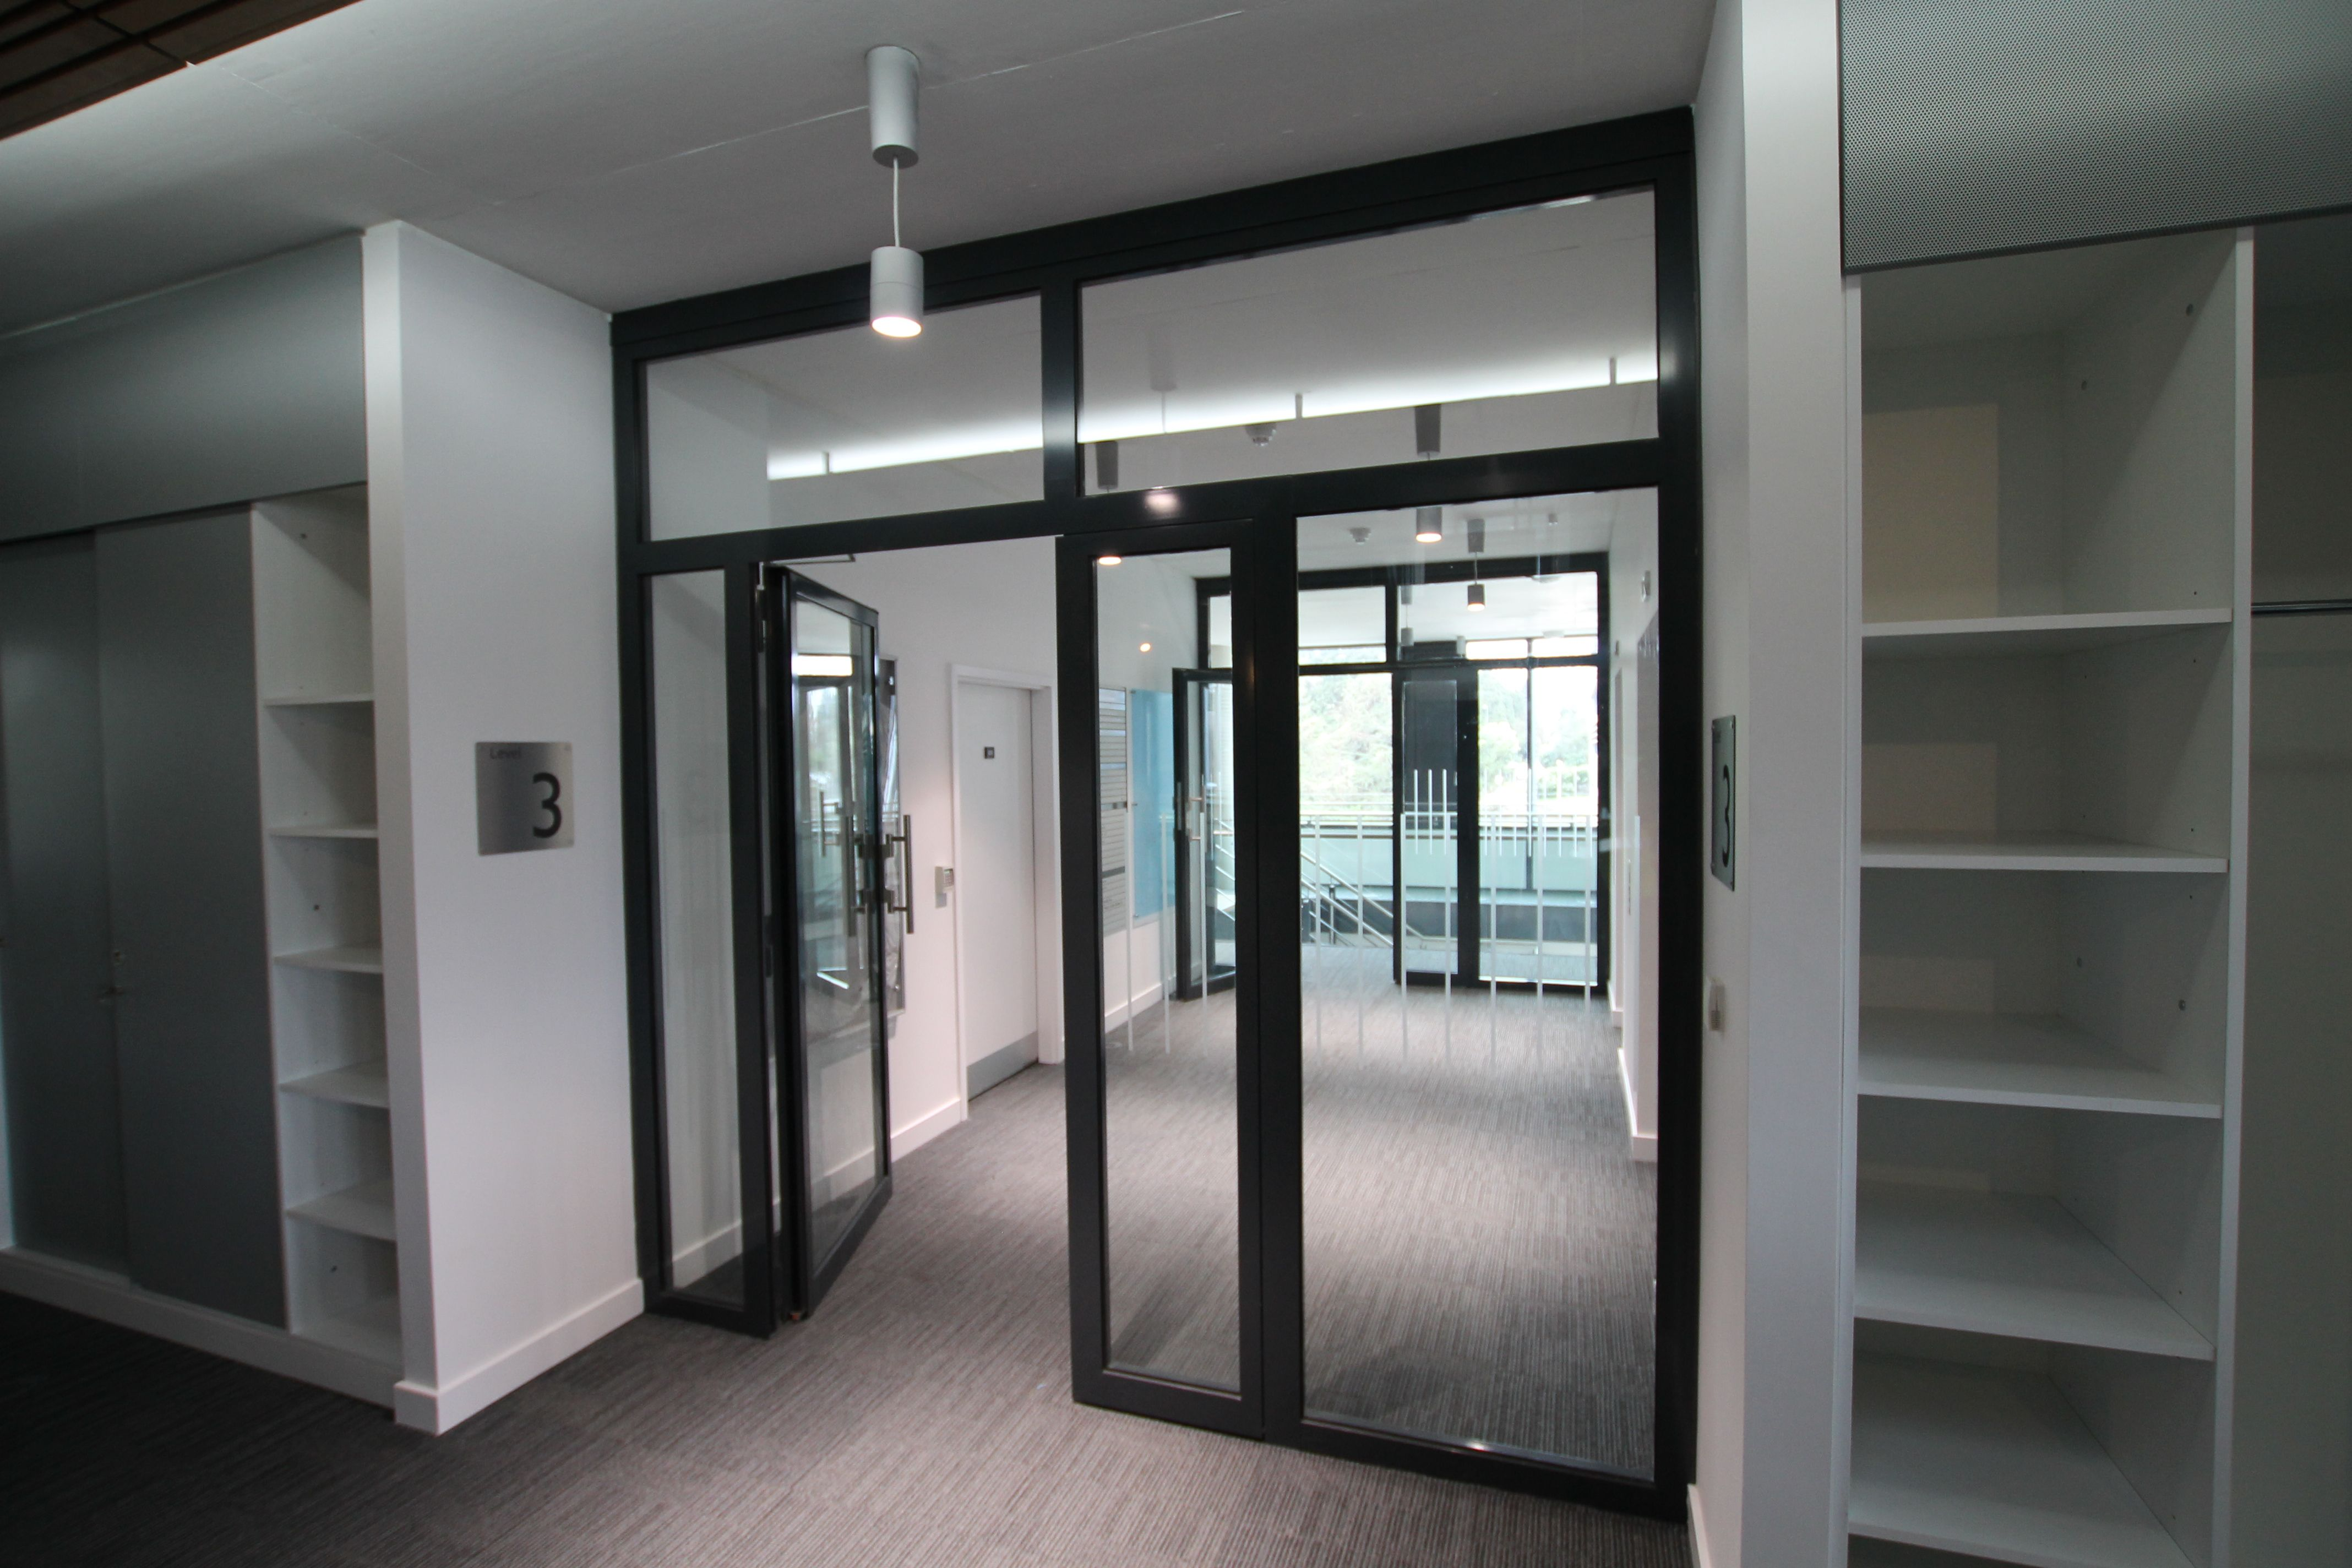 Fire rated glass doors with automated hold open device ...